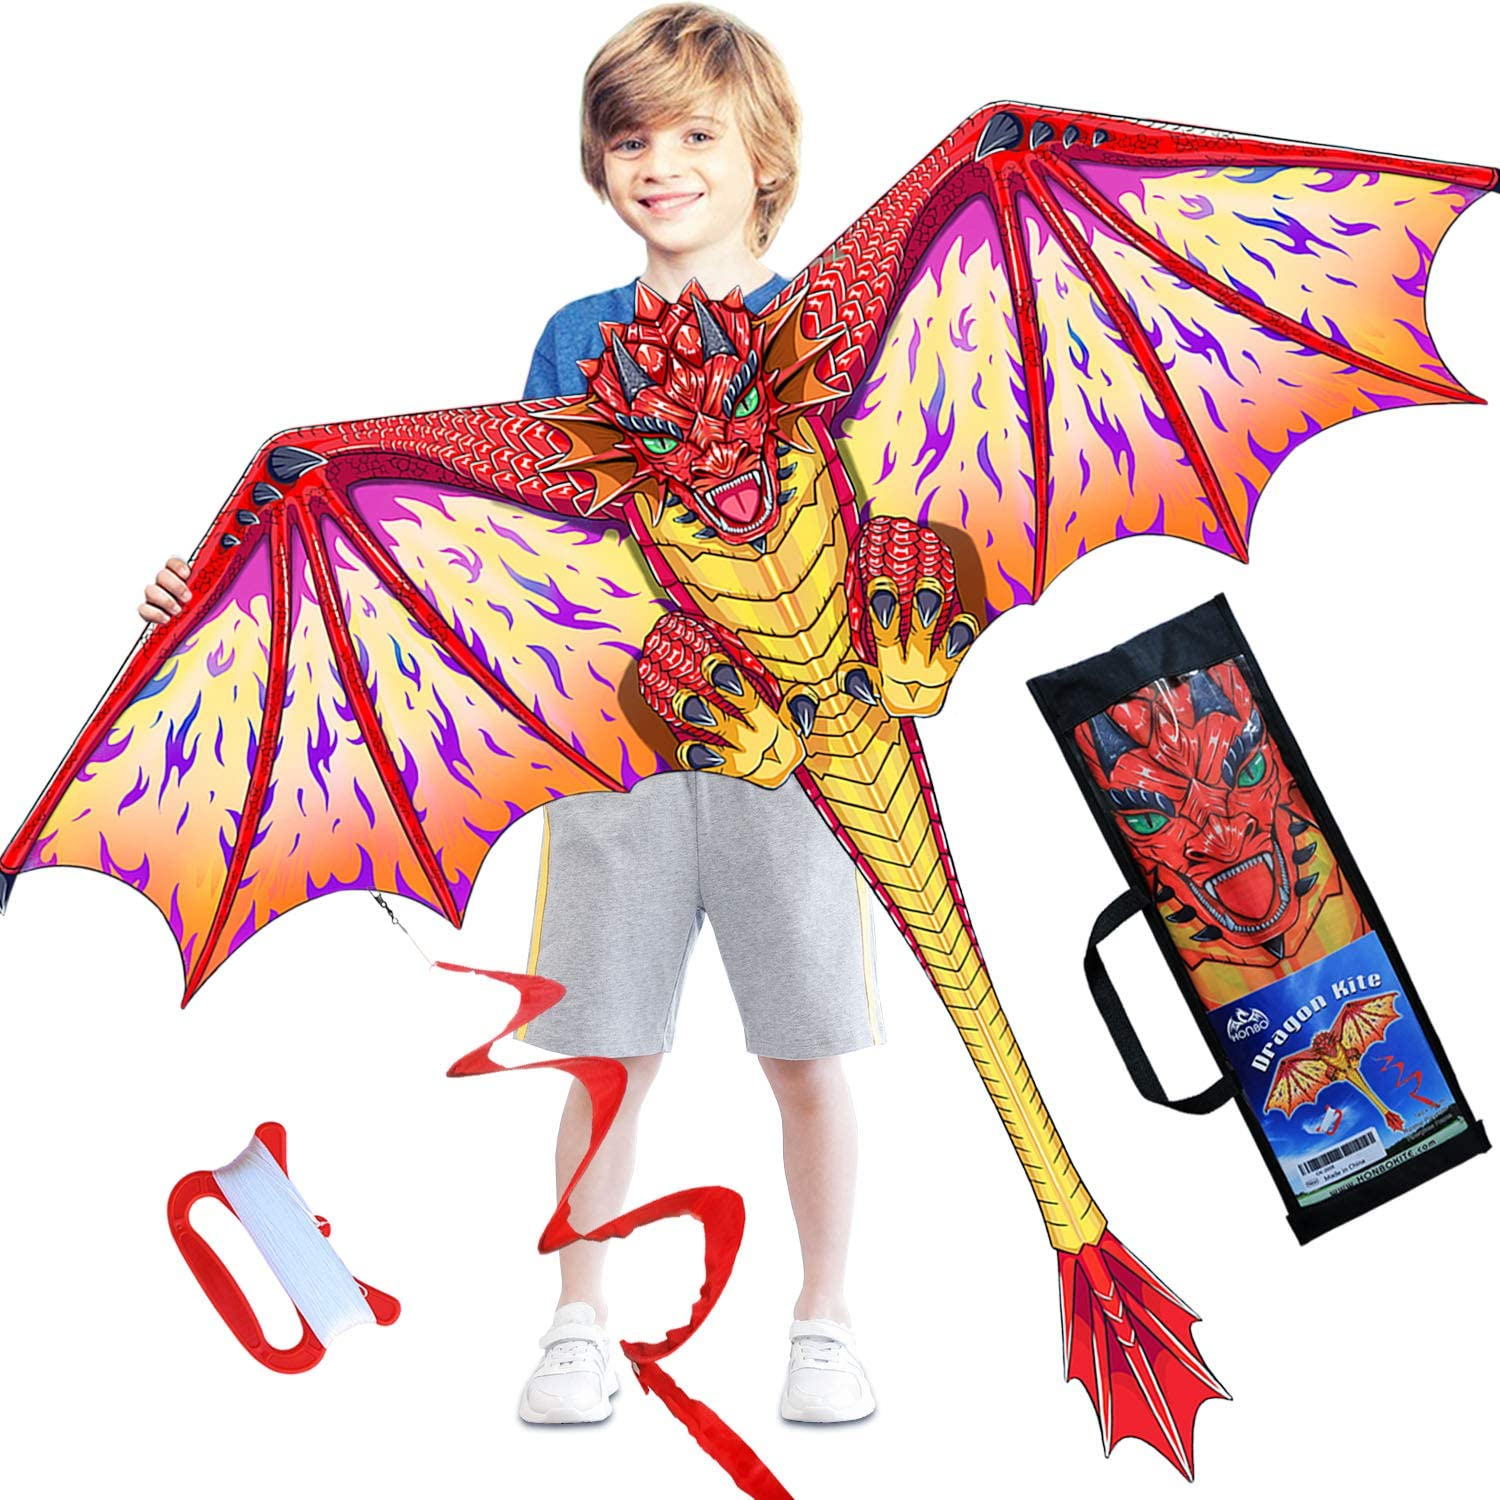 HONBO outlet Dragon depot Kite for Kids Beginner Adults-Easy to and Fly